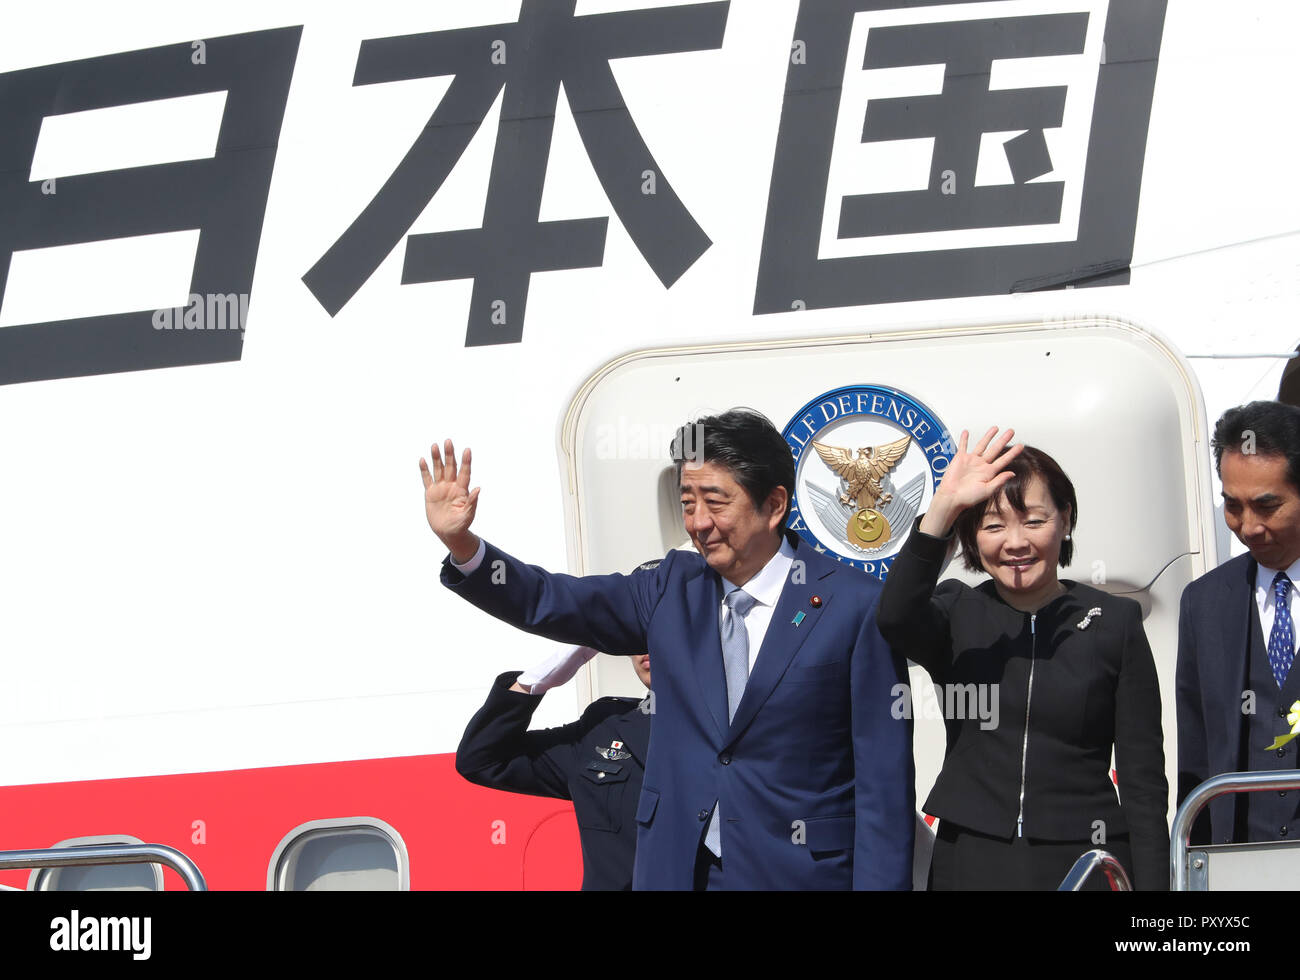 Tokyo, Japan. 25th Oct, 2018. Japanese Prime Minister Shinzo Abe (L) accompanied by his wife Akie waves to wellwishers as he leaves to Beijing at the Tokyo International Airport in Tokyo on Thursday, October 25, 2018. Abe will visit China for three days and will meet with President Xi Jinping and other leaders. Credit: Yoshio Tsunoda/AFLO/Alamy Live News Stock Photo